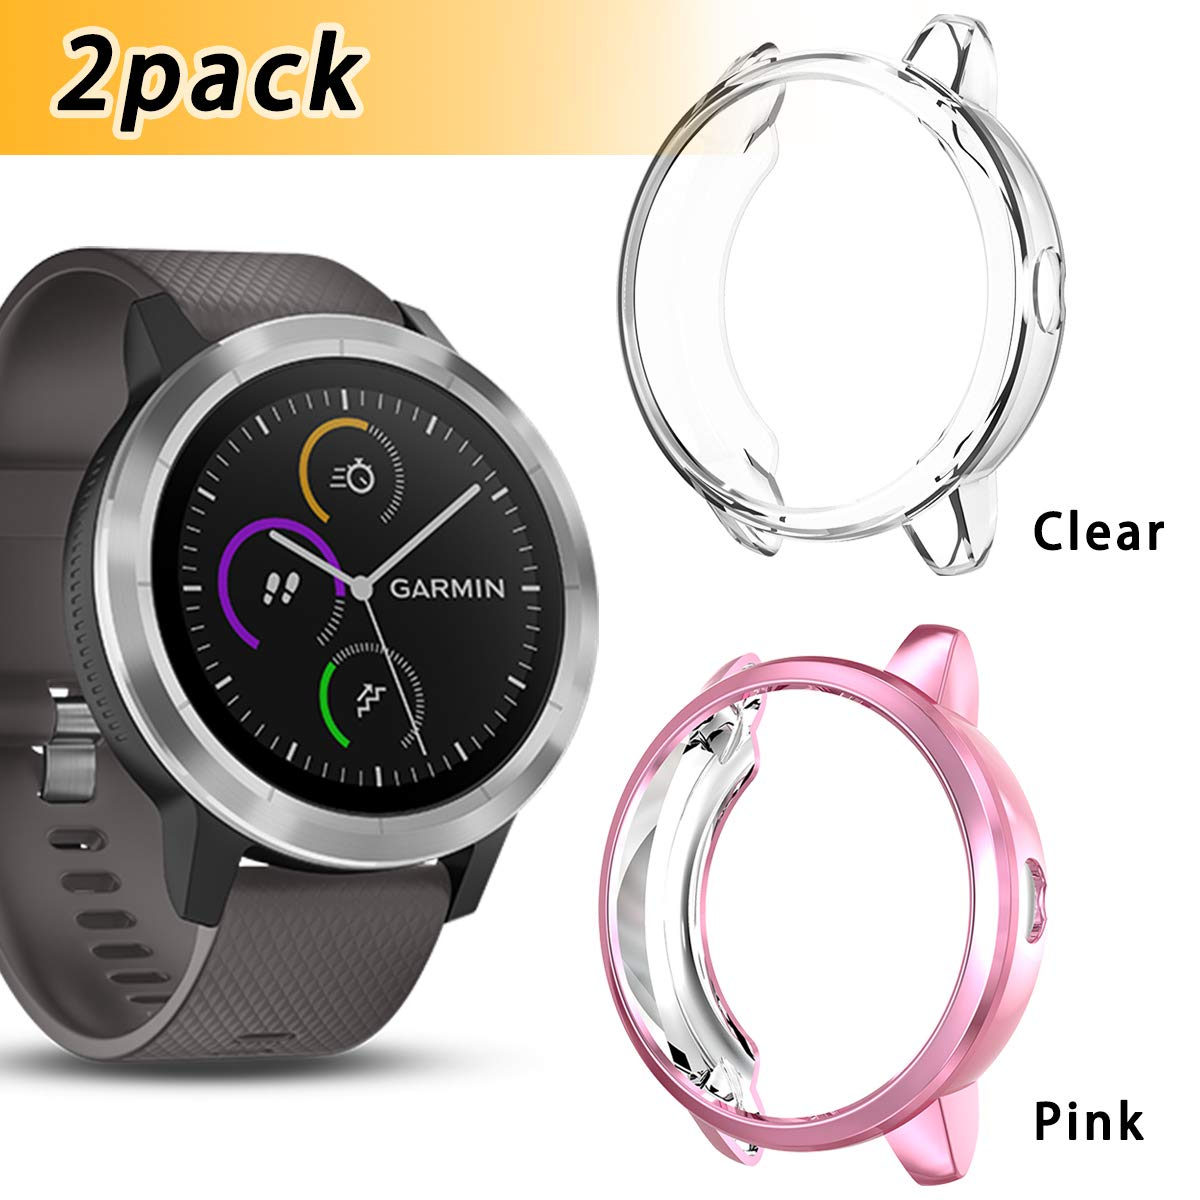 silver+clear Anzela 2 PACK Case for Garmin Vivoactive 3 Trainer Smartwatch Soft Plated TPU Scratch-Proof Protective Bumper Shell Case Cover for Garmin Vivoactive Smartwatch